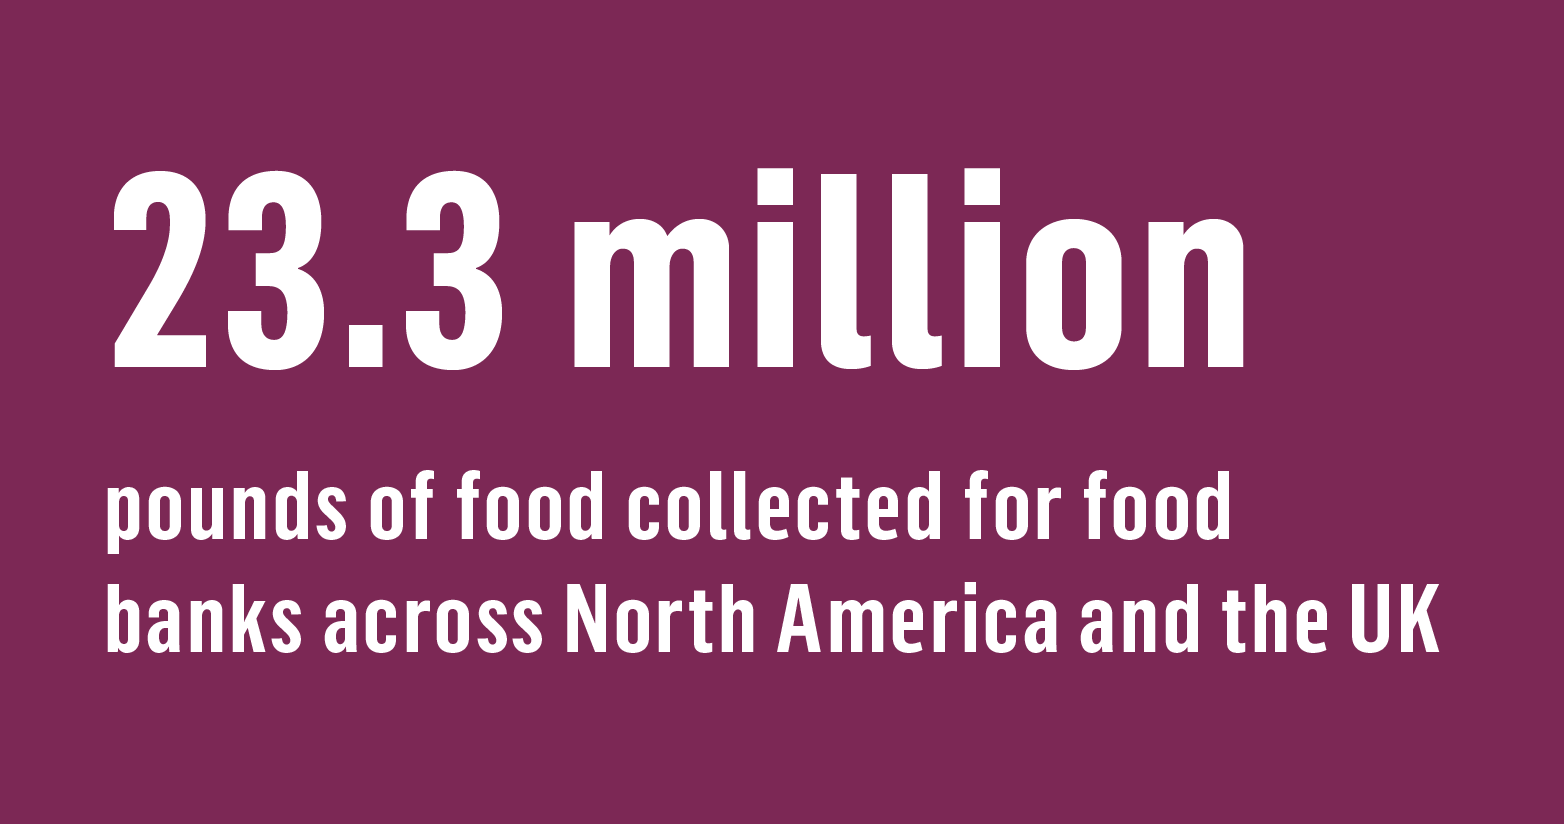 23.3 million pounds of food collected for food banks across North America and the UK